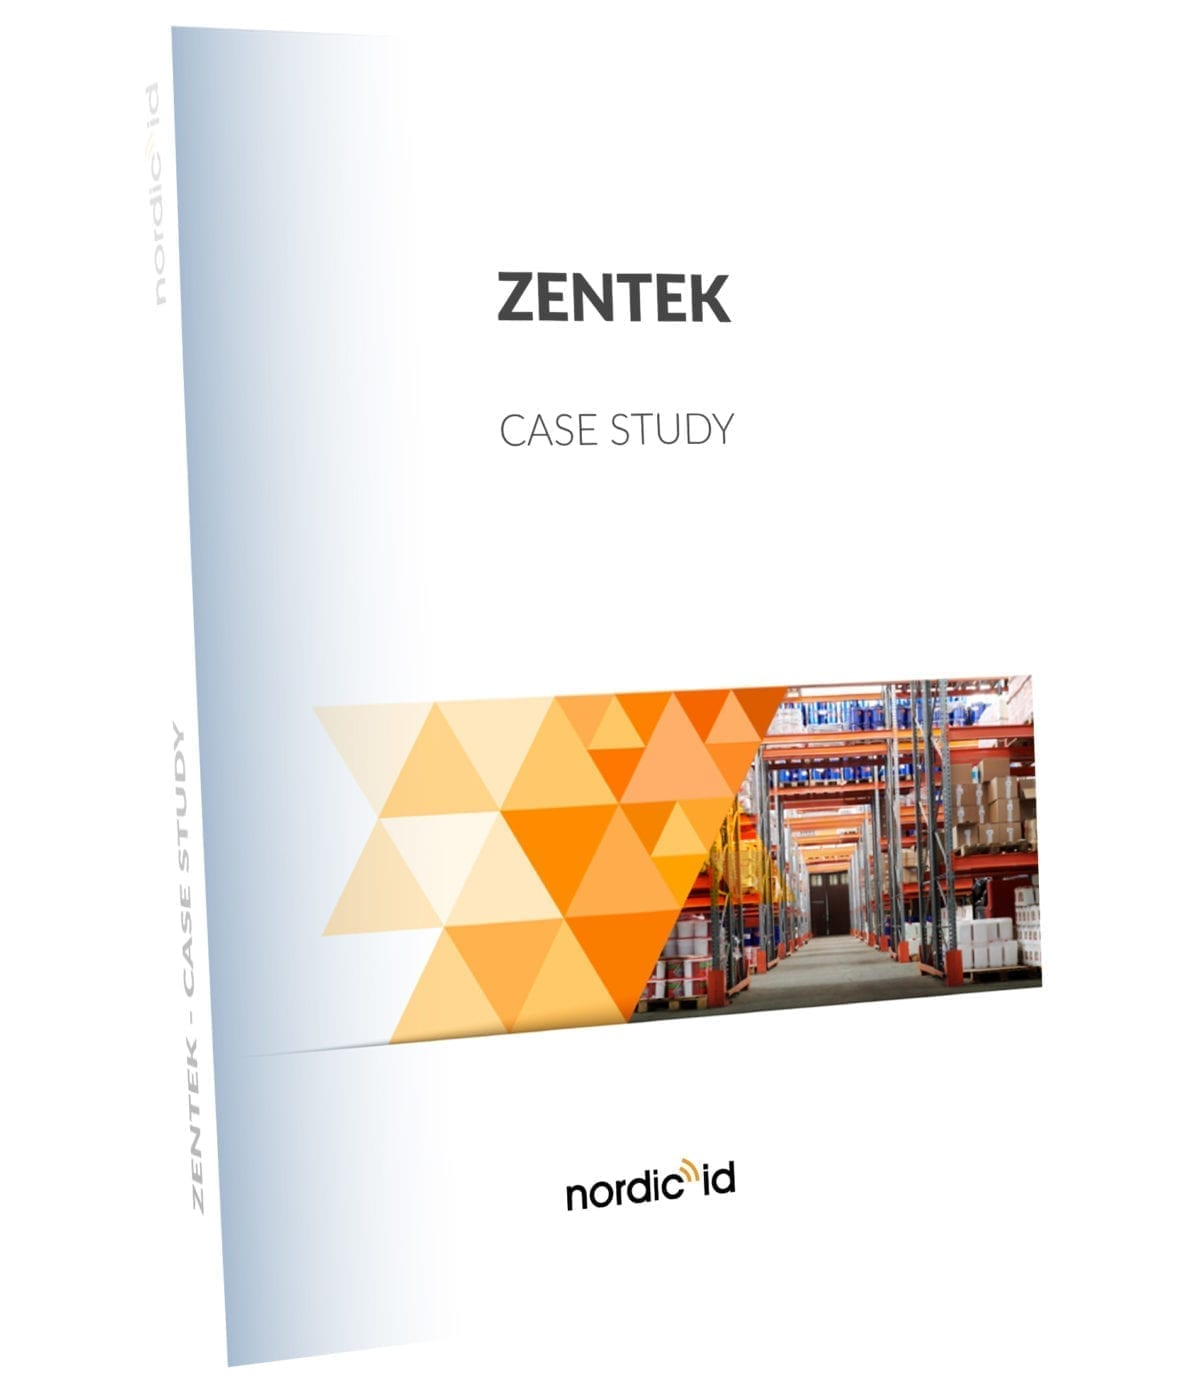 Zentek Customer Case Study